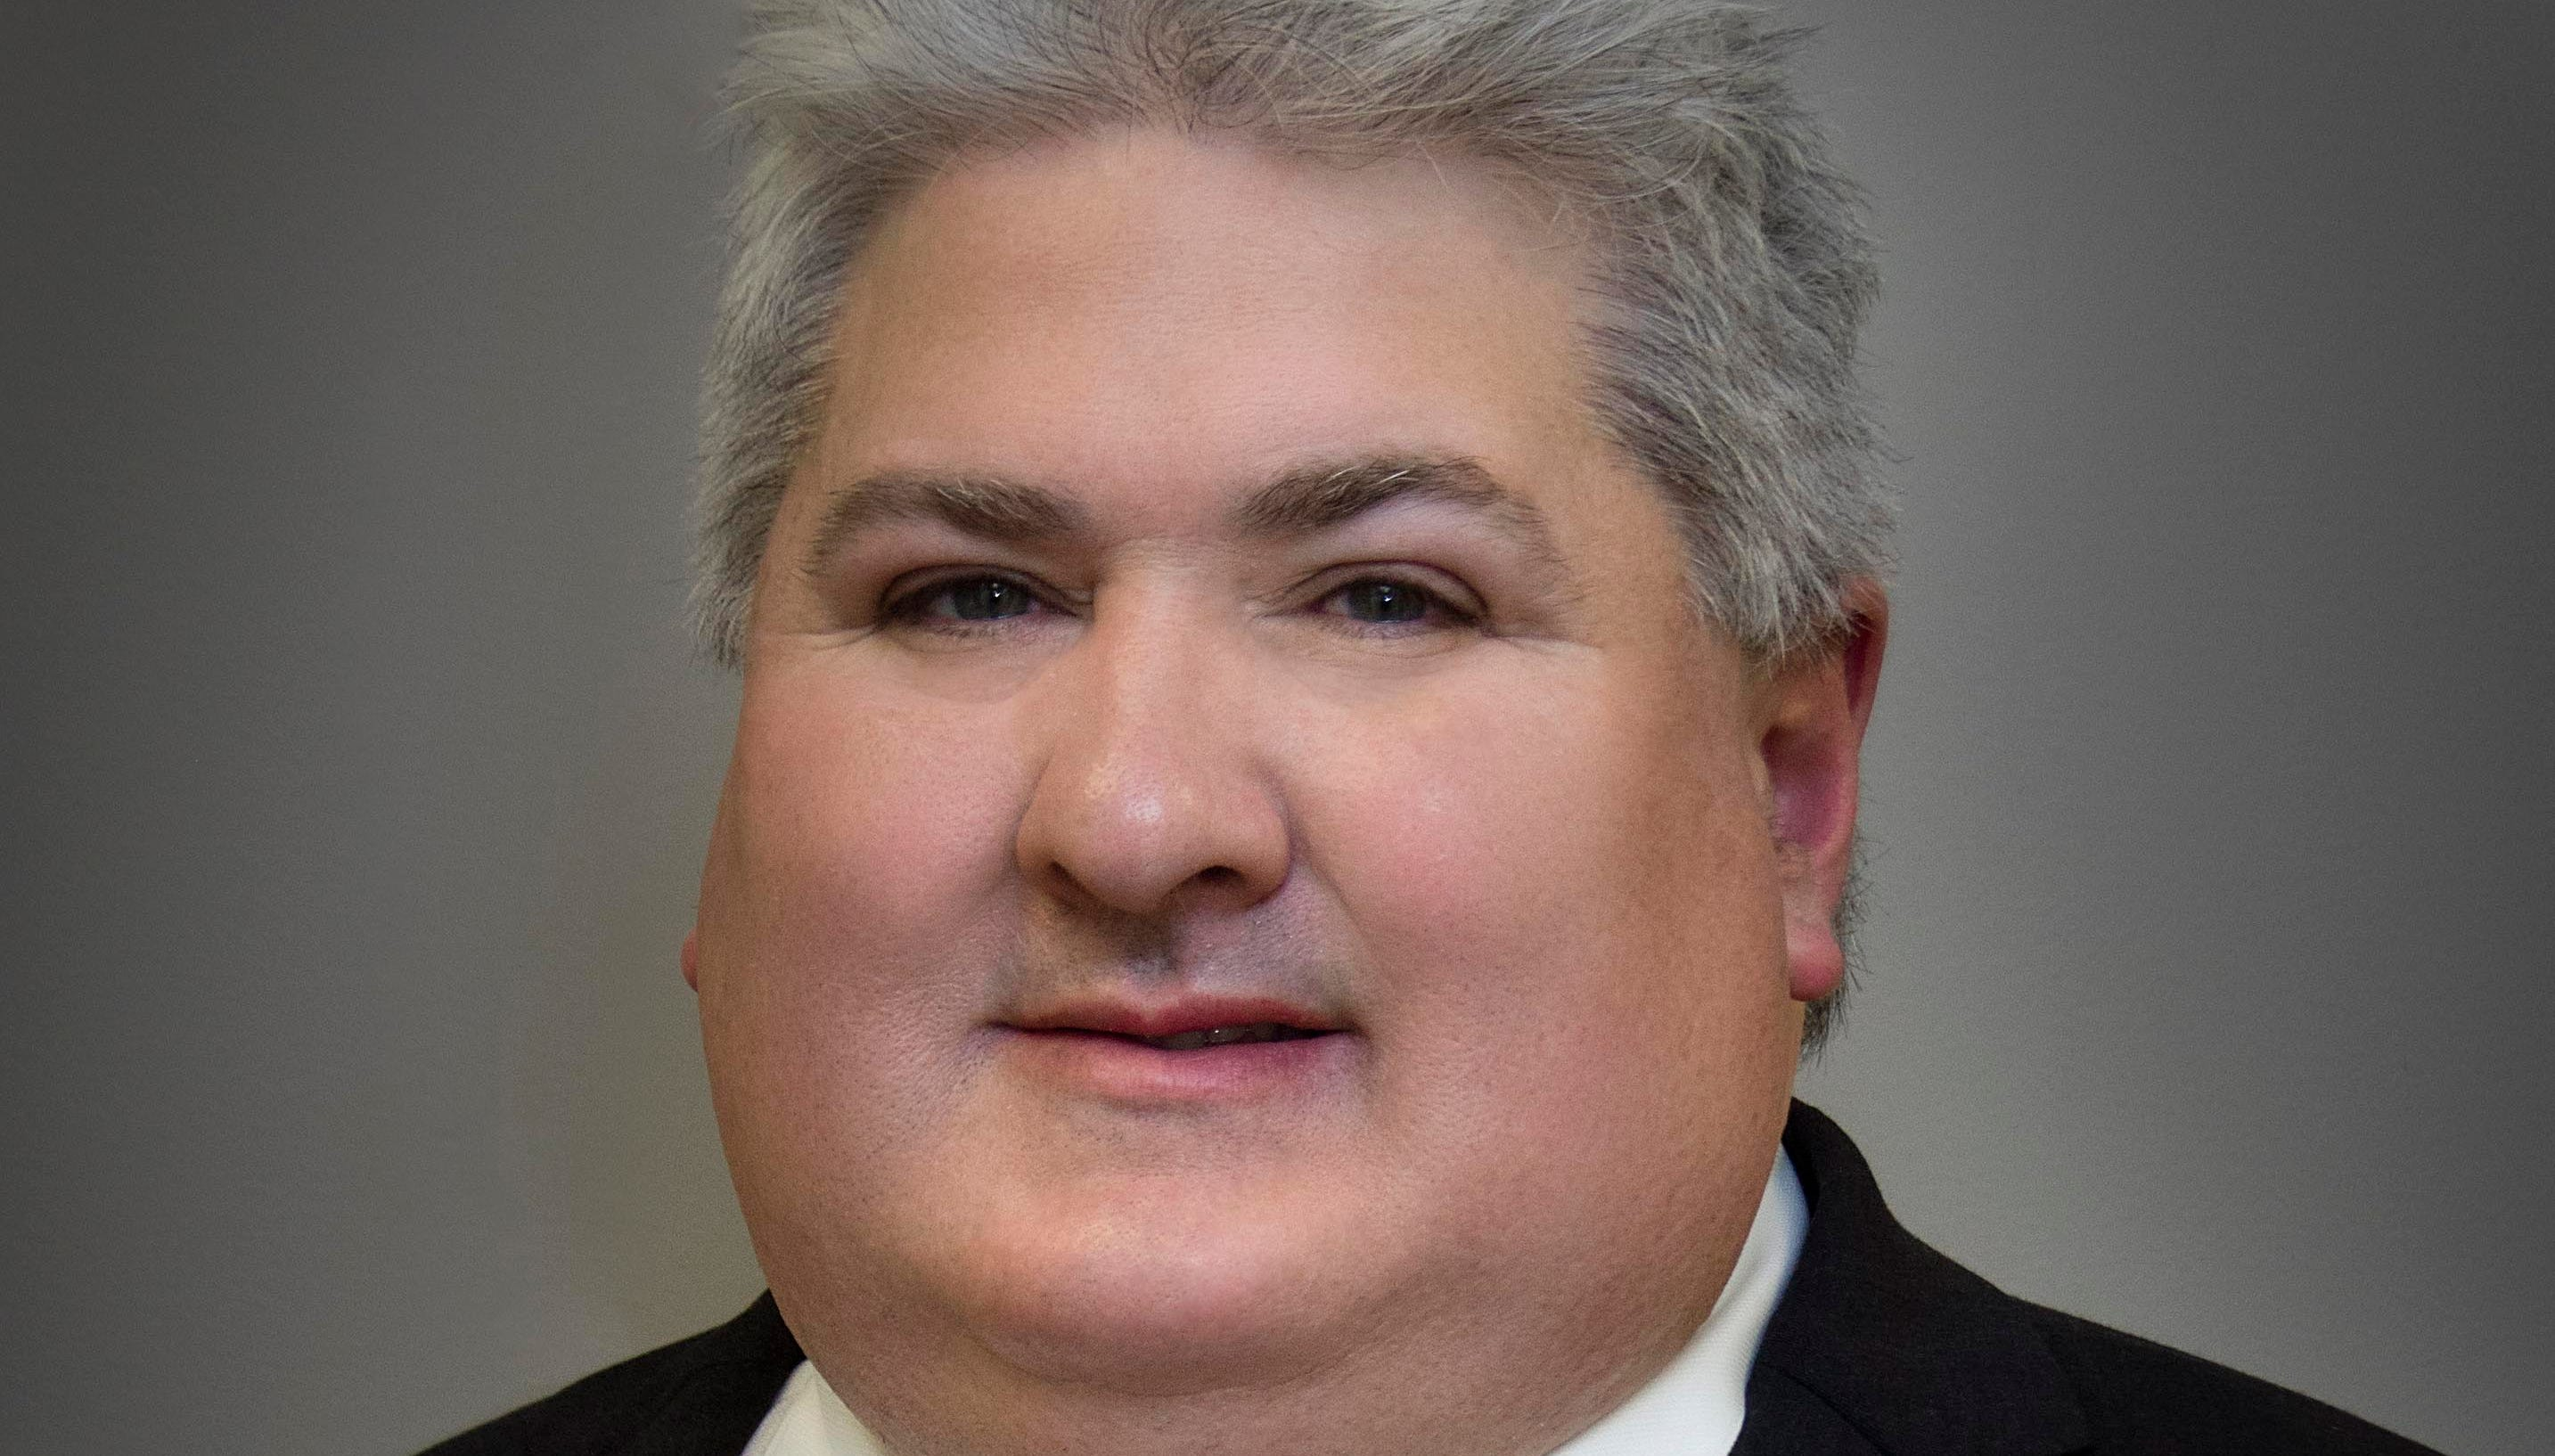 MidHudson Regional Hospital in Poughkeepsie, a member of the Westchester Medical Center Health Network (WMCHealth), welcomes general orthopedic surgeon Michael M. Zilles, MD, to the hospital's medical staff.